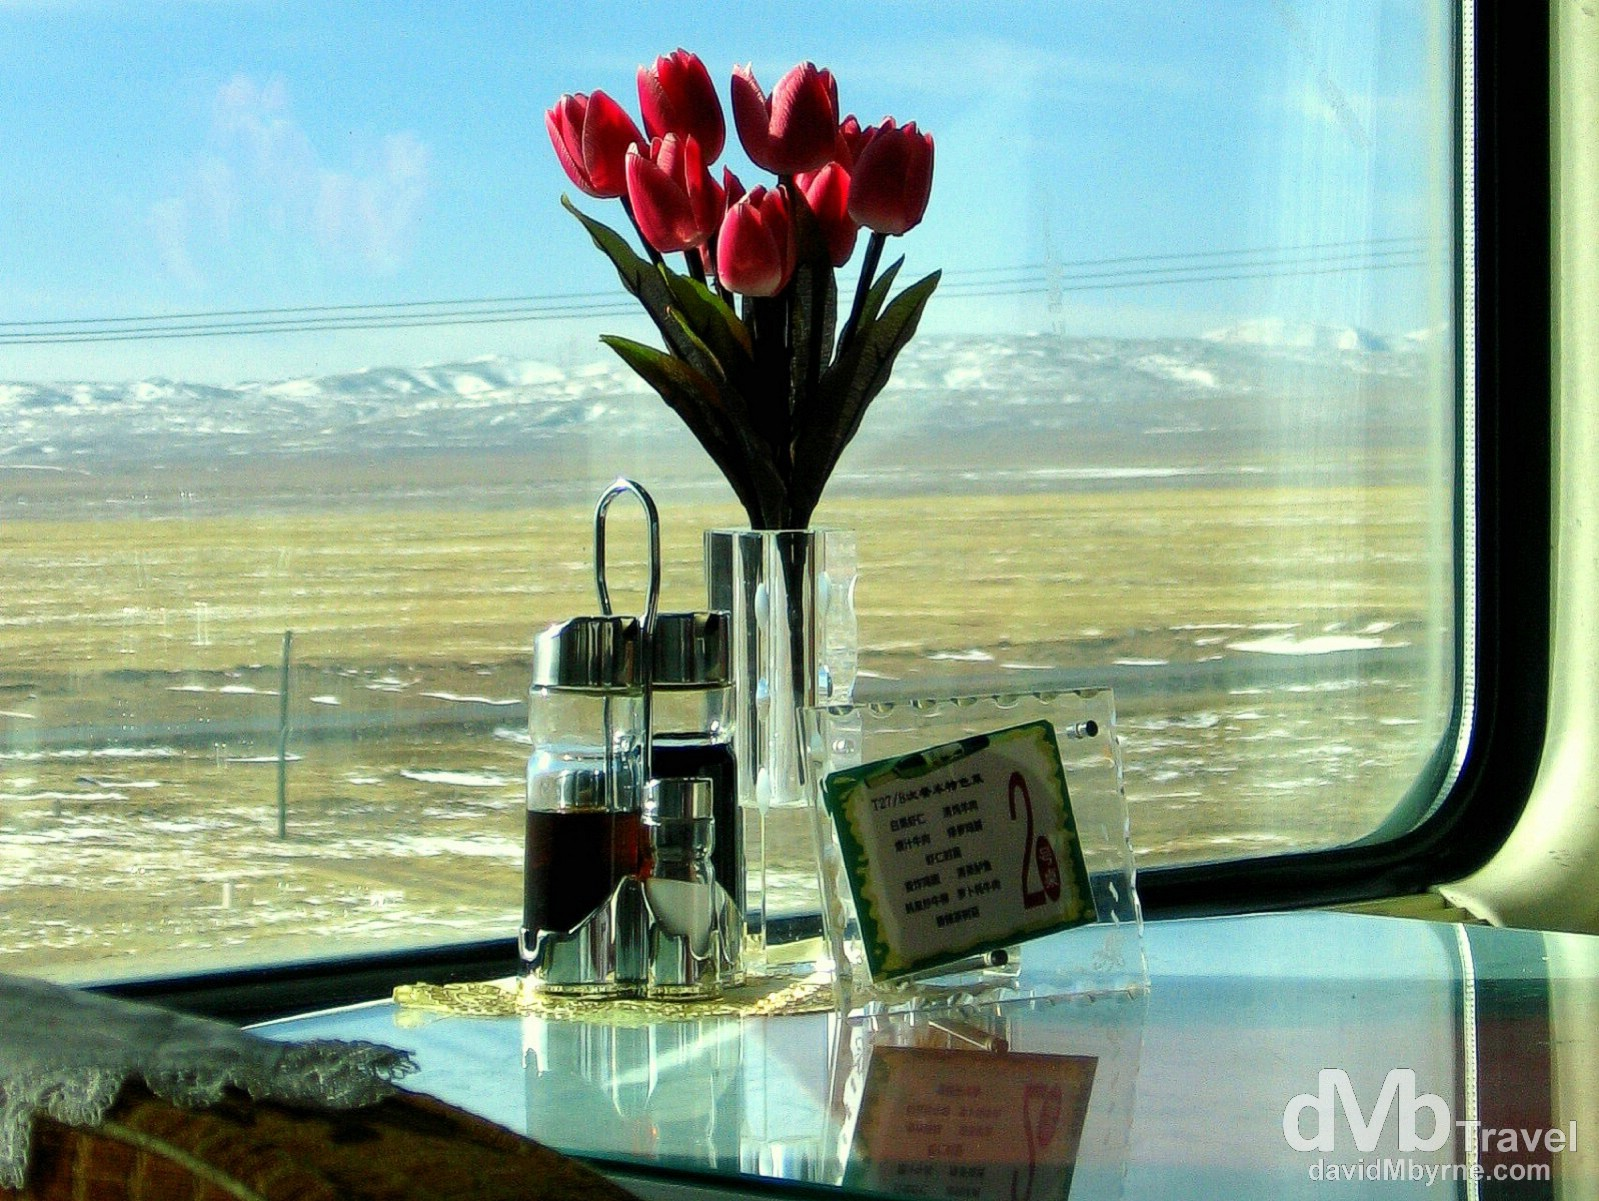 Dining car of the Qinghai–Tibet Railway crossing the Tibetan Plateau, Tibet. February 24th, 2008.